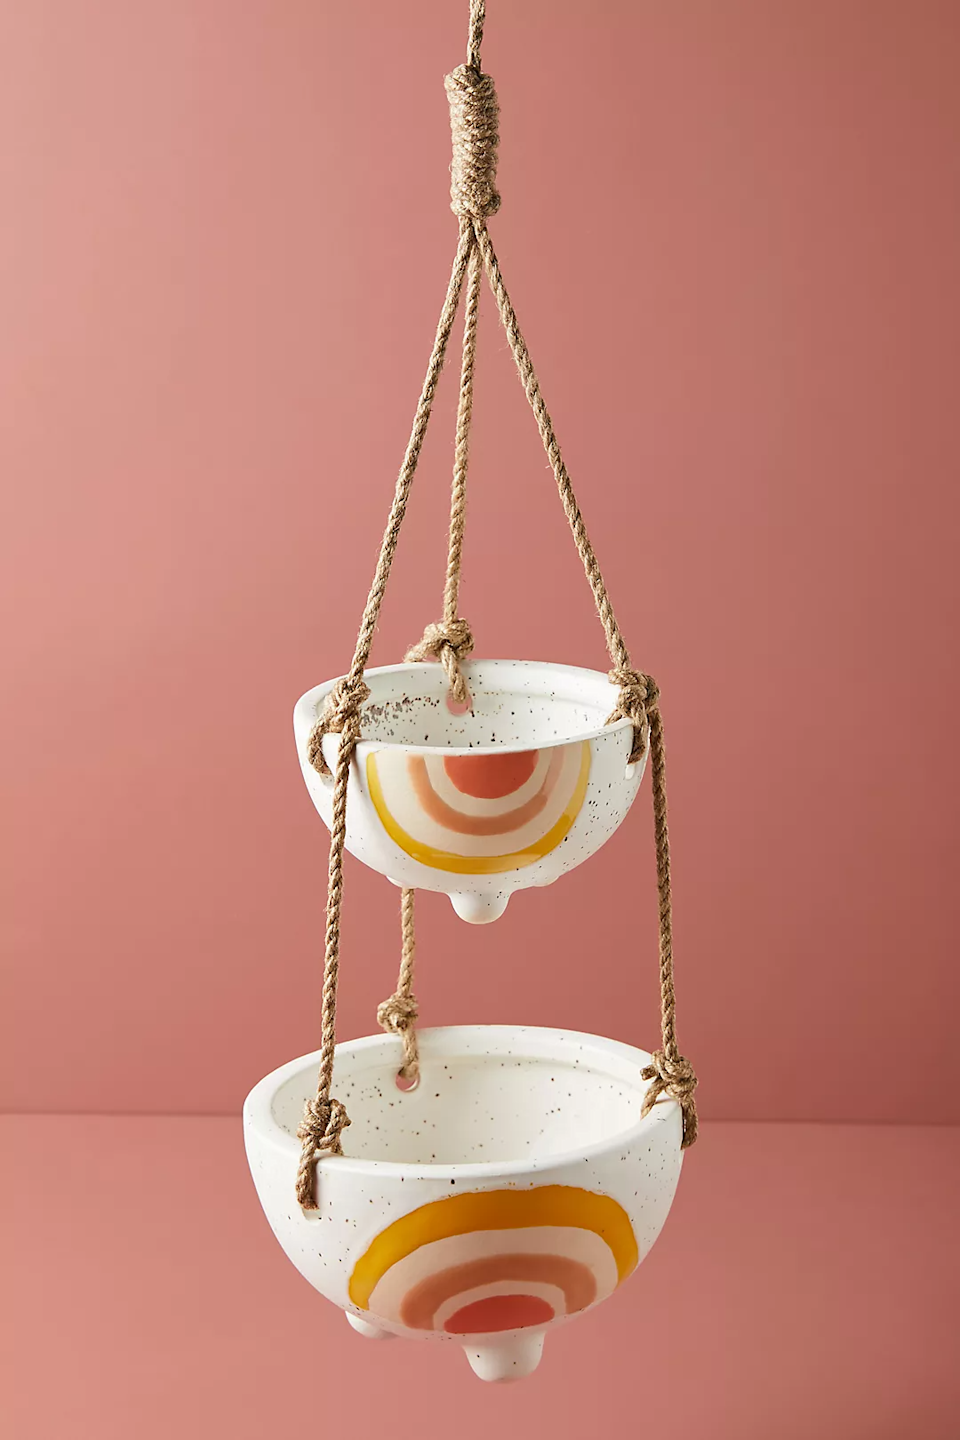 """<h2>Anthropologie Iris Rainbow Two-Tier Hanging Planter</h2><br>If this sweet little rainbow duo doesn't brighten up a dark corner of your space, we're not sure what will.<br><br><strong>Anthropologie</strong> Iris Rainbow Two-Tier Hanging Planter, $, available at <a href=""""https://go.skimresources.com/?id=30283X879131&url=https%3A%2F%2Fwww.anthropologie.com%2Fshop%2Firis-rainbow-two-tier-hanging-planter"""" rel=""""nofollow noopener"""" target=""""_blank"""" data-ylk=""""slk:Anthropologie"""" class=""""link rapid-noclick-resp"""">Anthropologie</a>"""